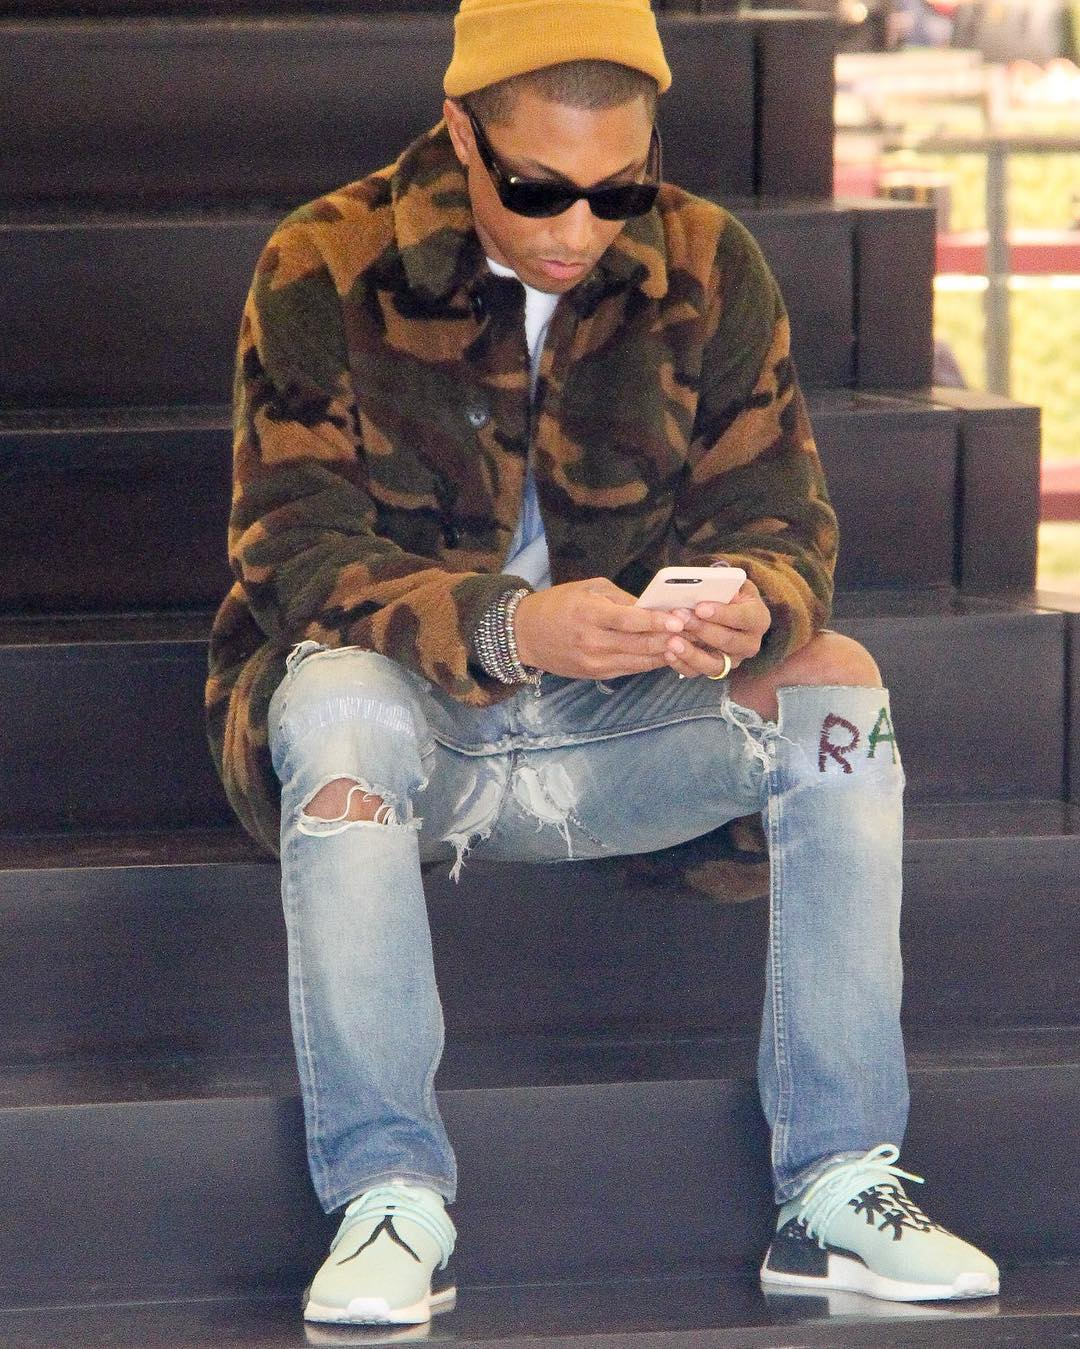 SPOTTED: Pharrell Williams In Camo Coat, Chanel Sunglasses And Adidas NMD's